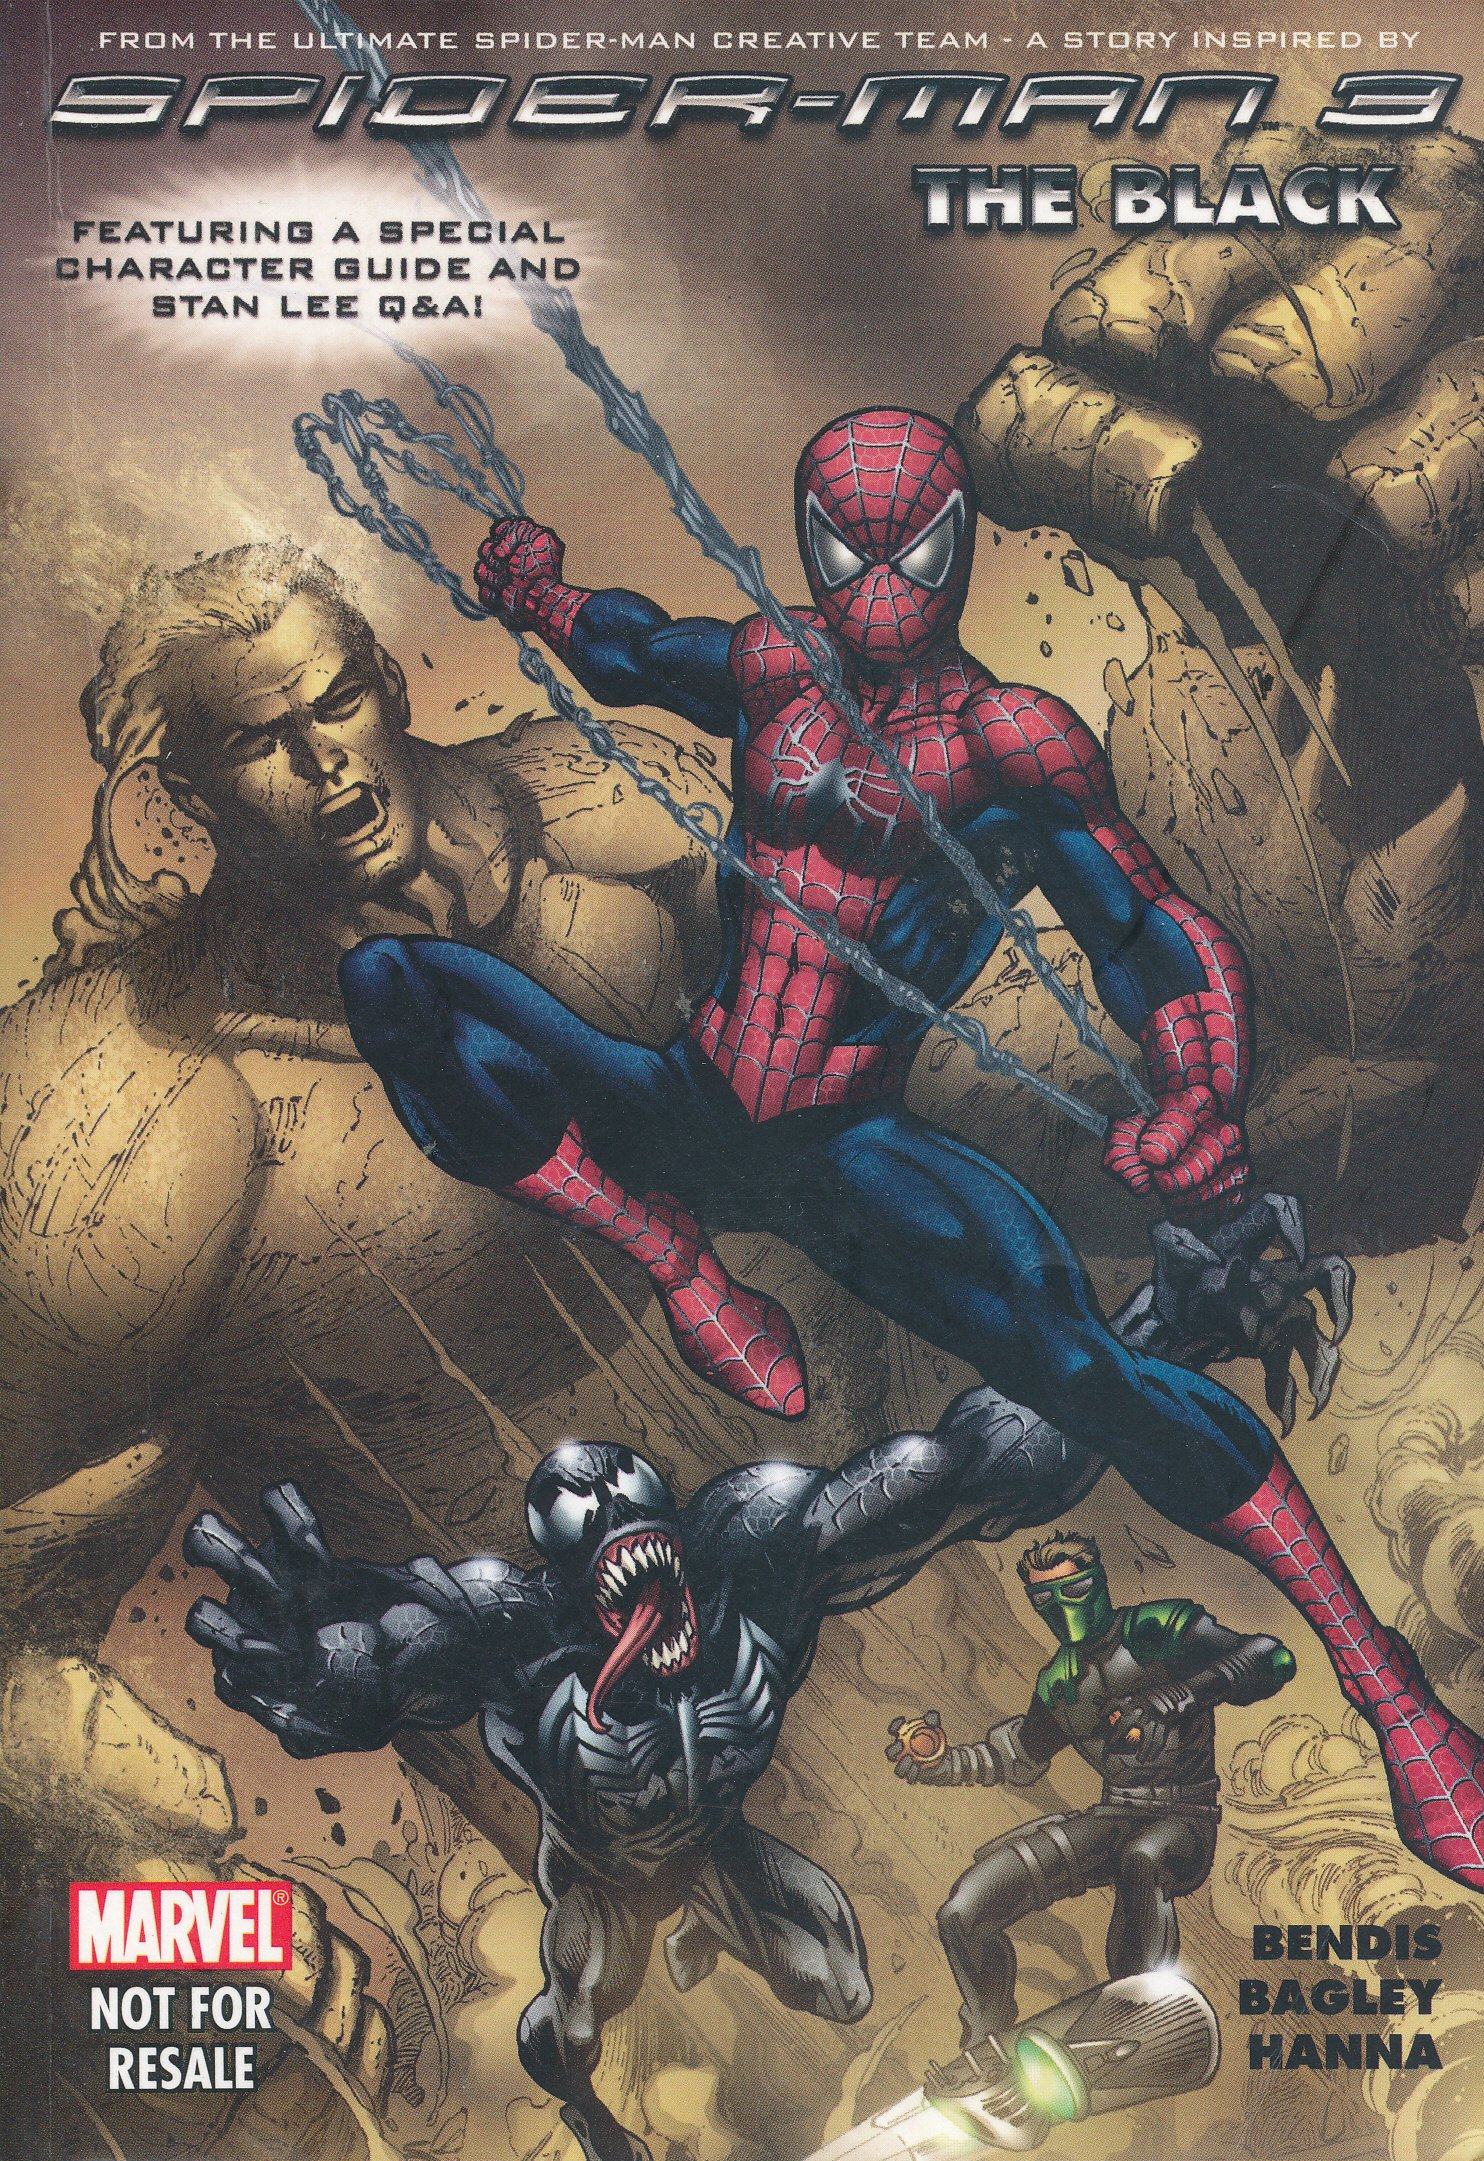 Read Online From the Ultimate Spider-man Creative Team - A Story Inspired By Spider-man 3 : The Black (Featuring a Special Character Guide and Stan Lee Q & A) pdf